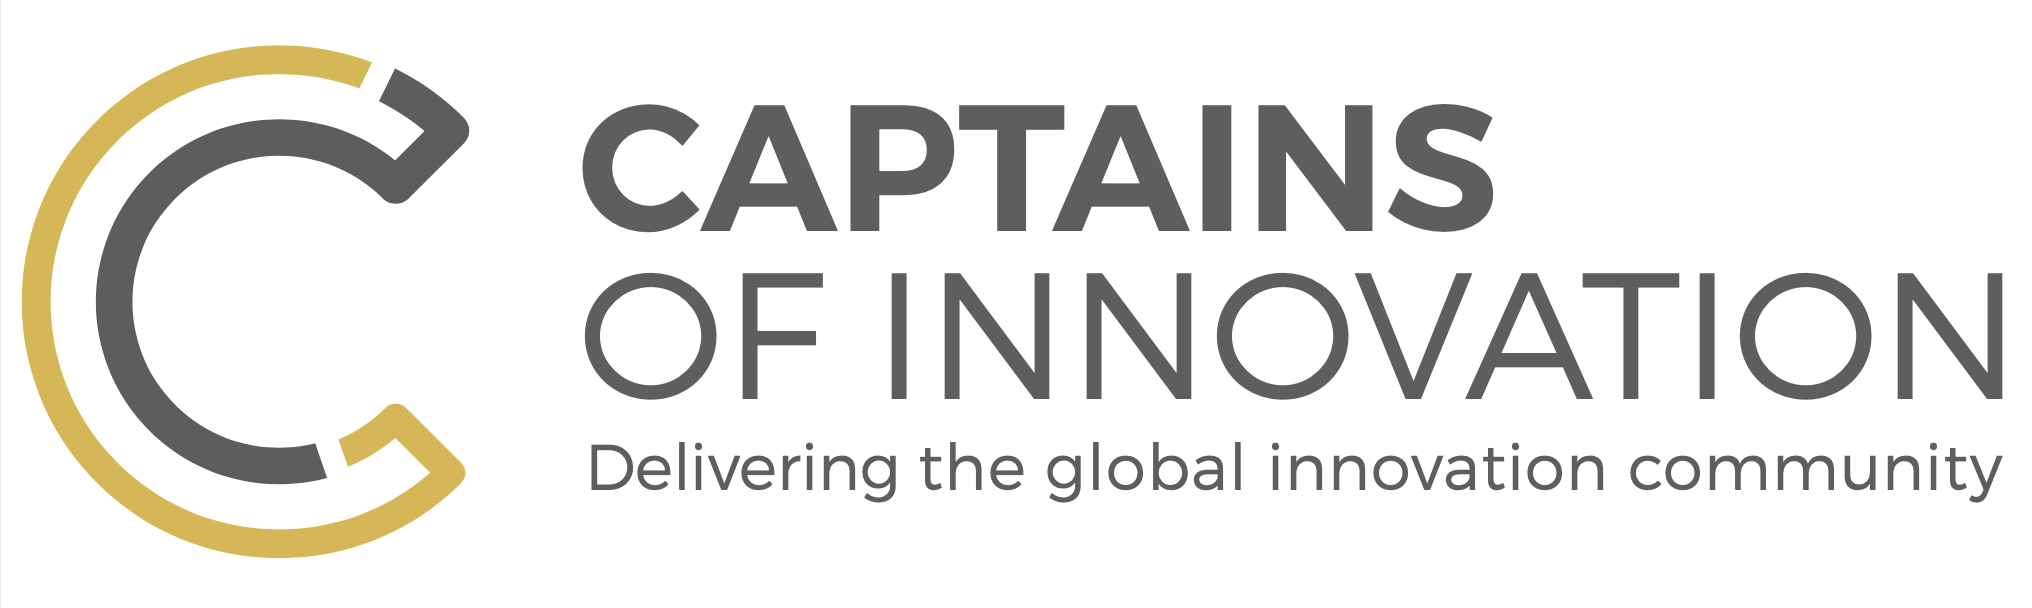 Captains of Innovation